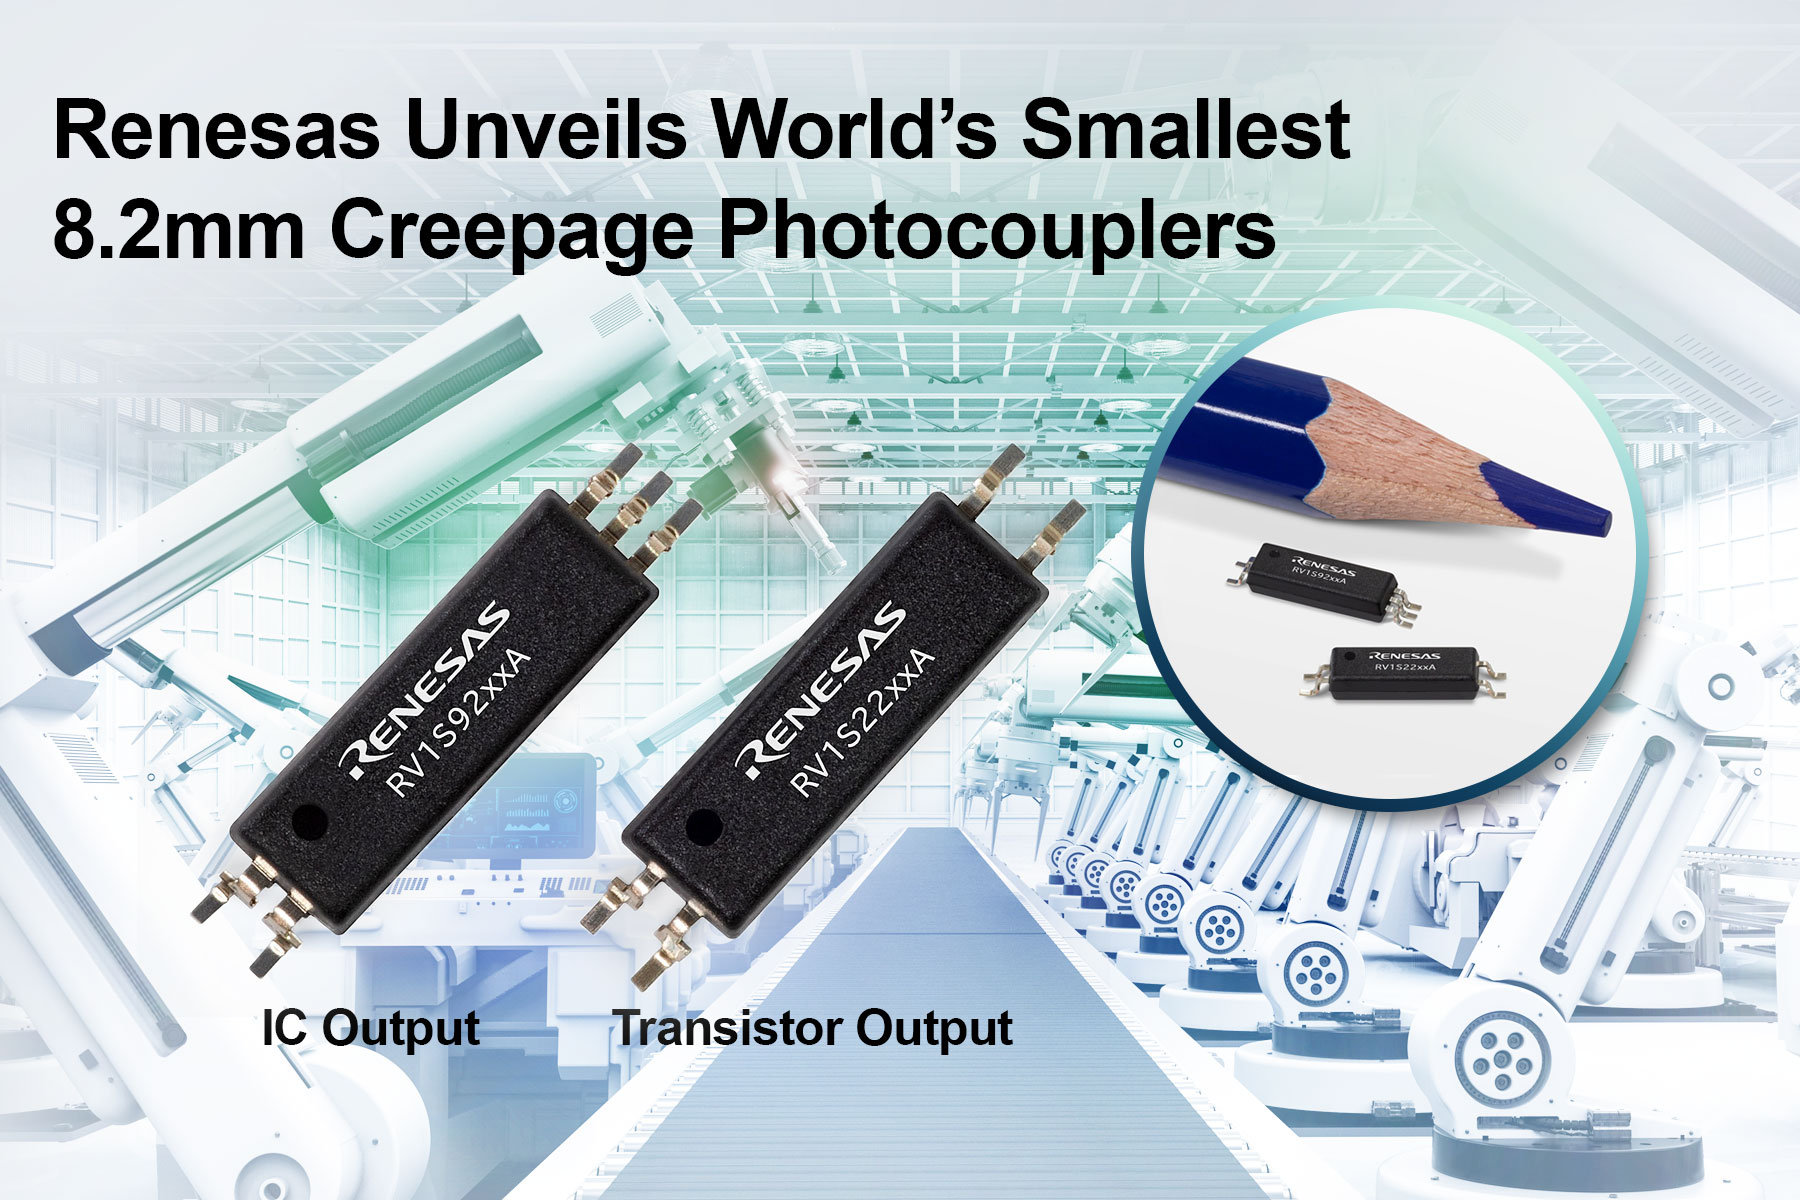 Renesas Electronics Announces World's Smallest Photocouplers for Industrial Automation